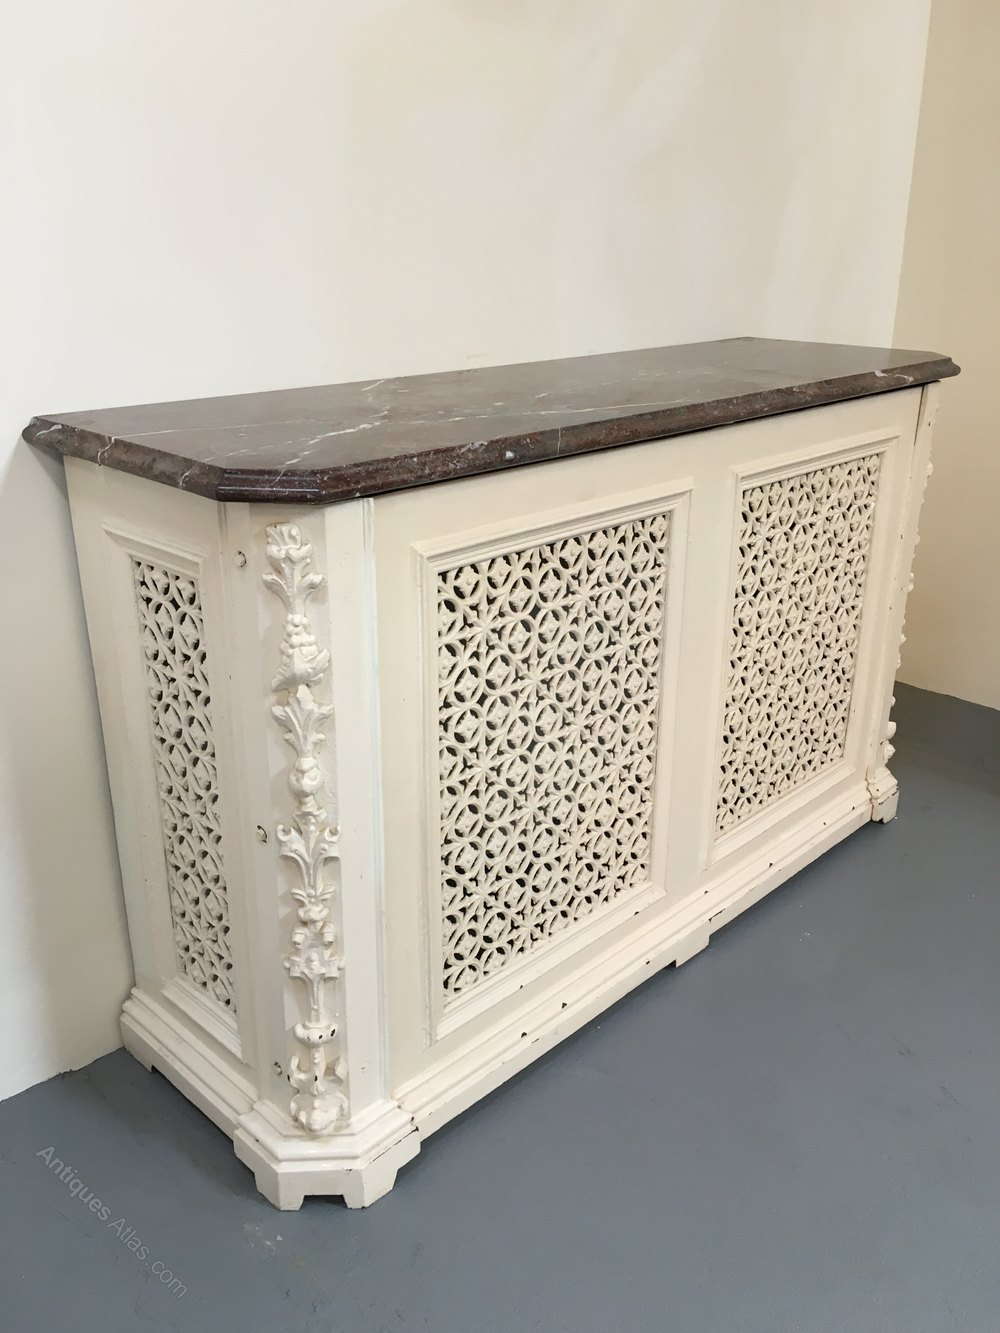 Antiques atlas cast iron radiator cover - Cast iron radiator covers ...